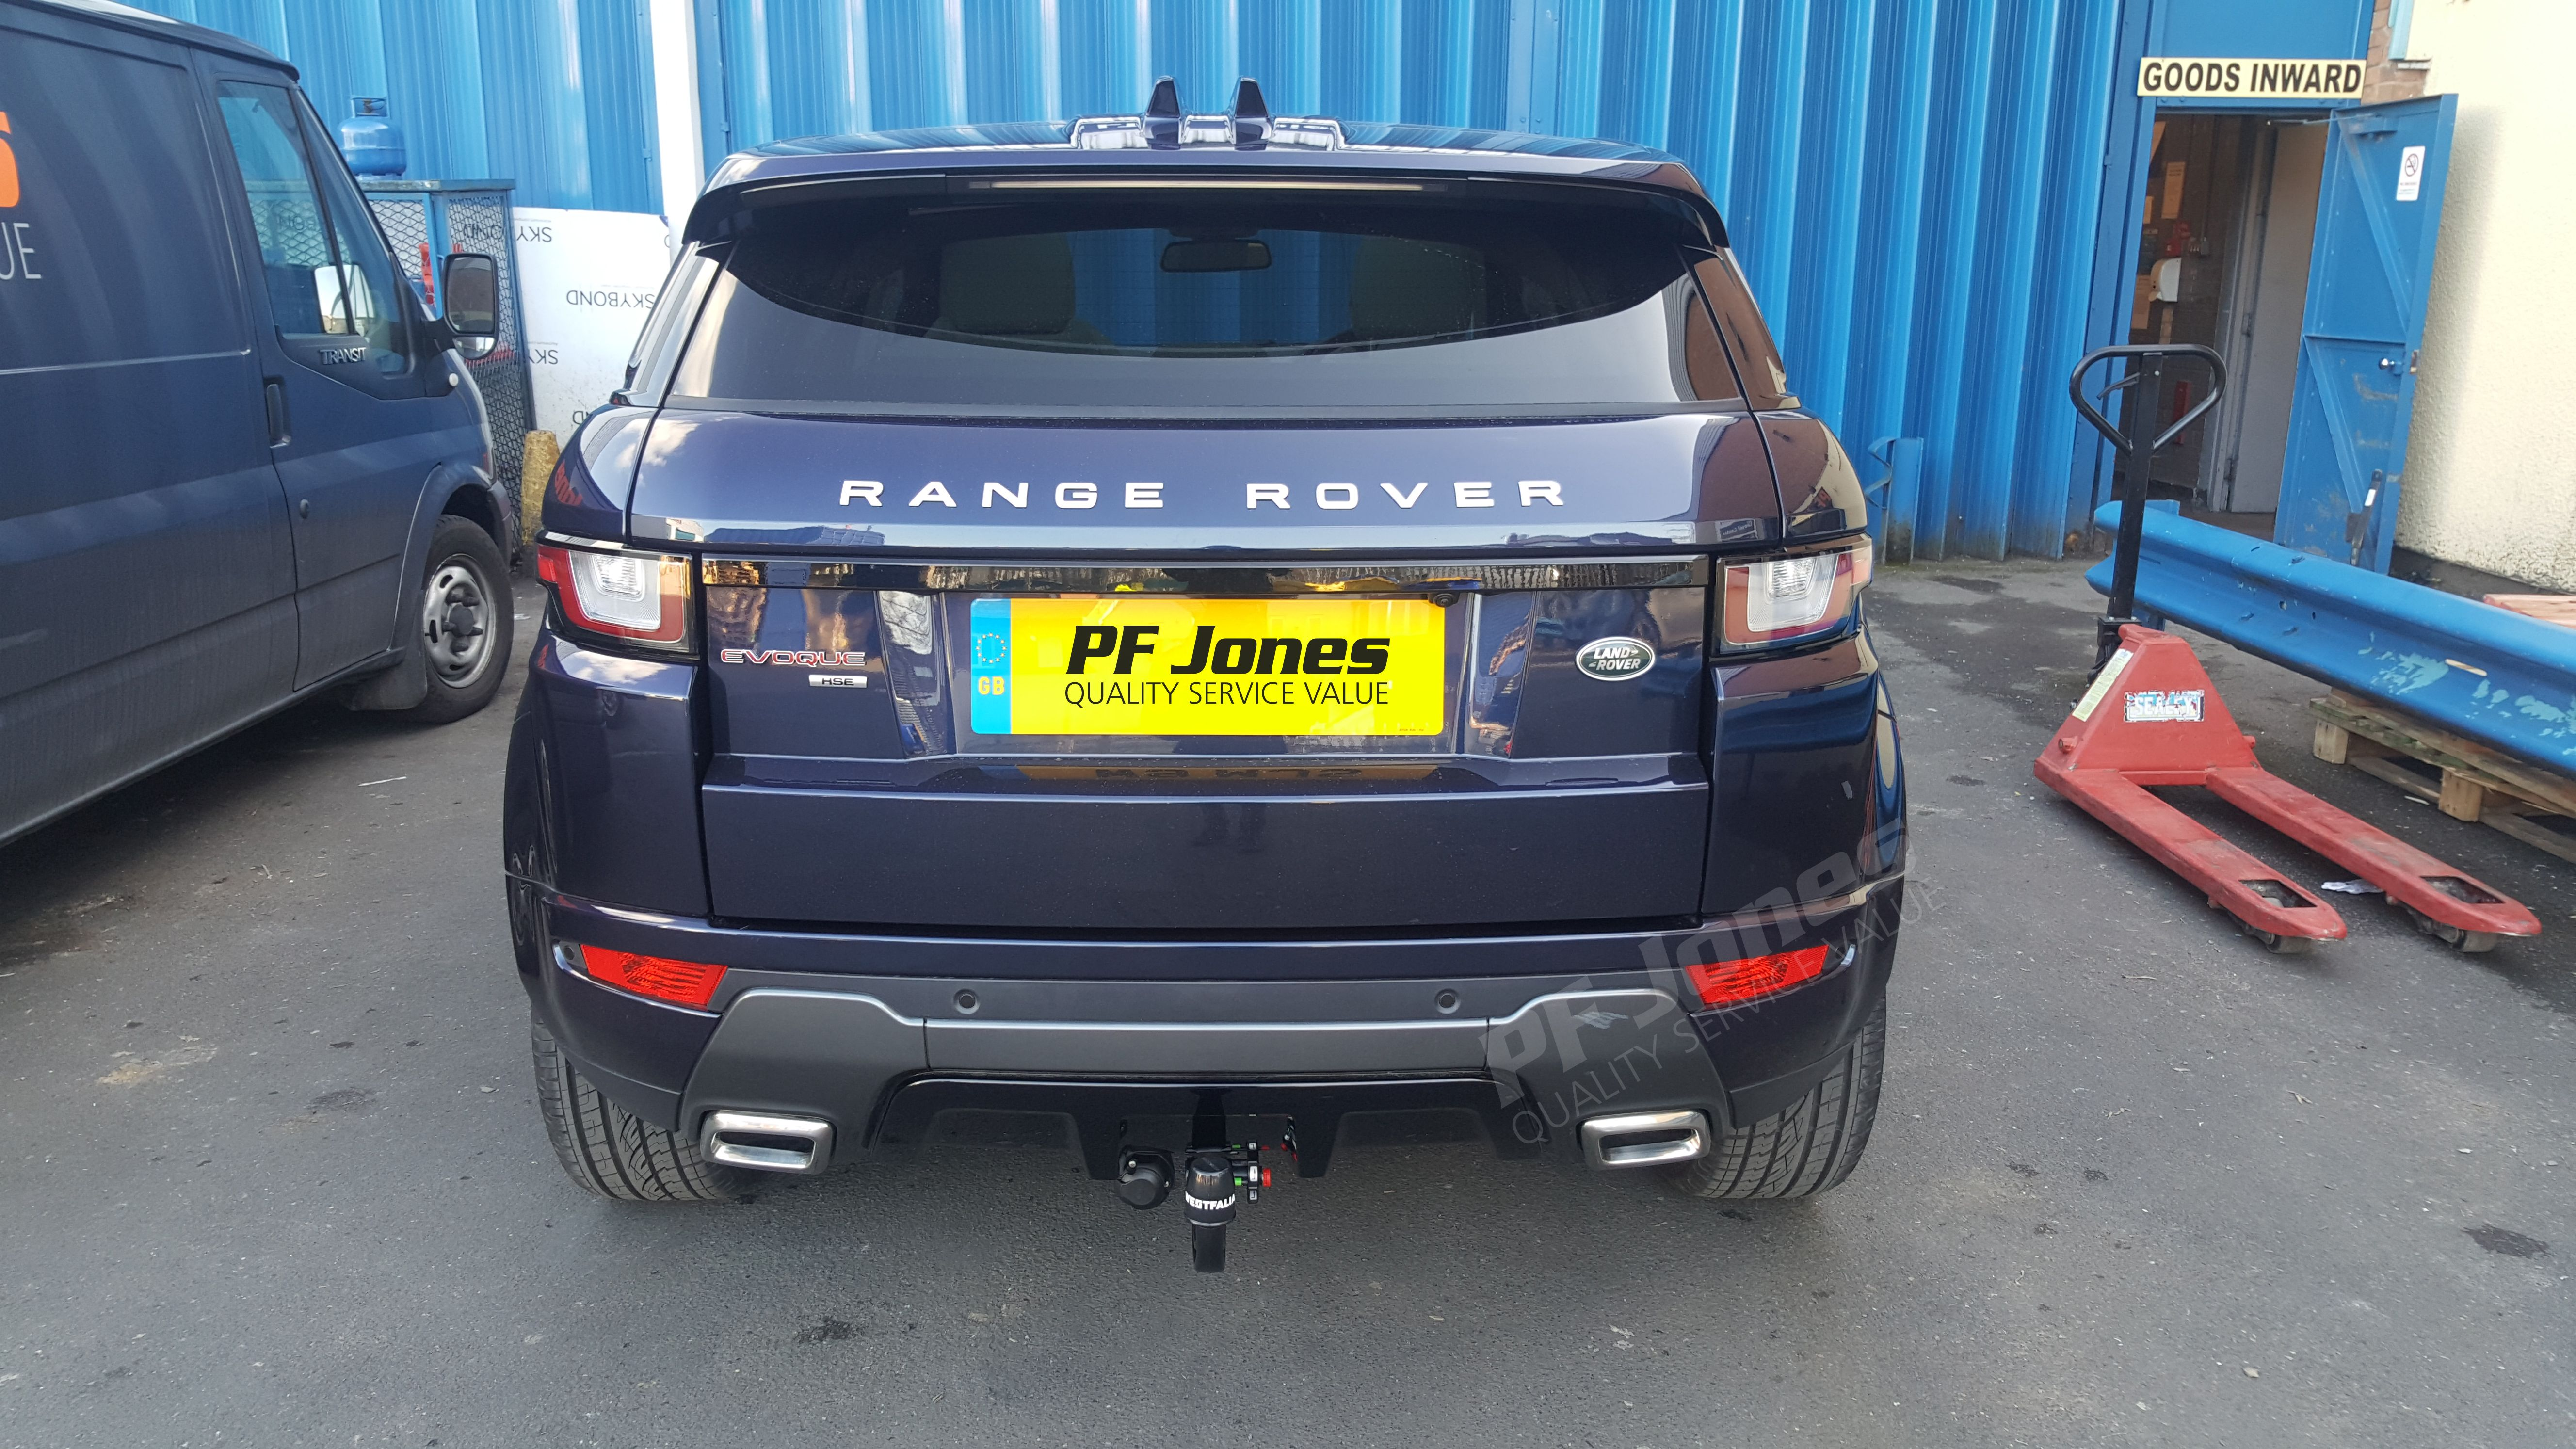 Range Rover Evoque Fitted With A Westfalia Detachable Towbar At Pf